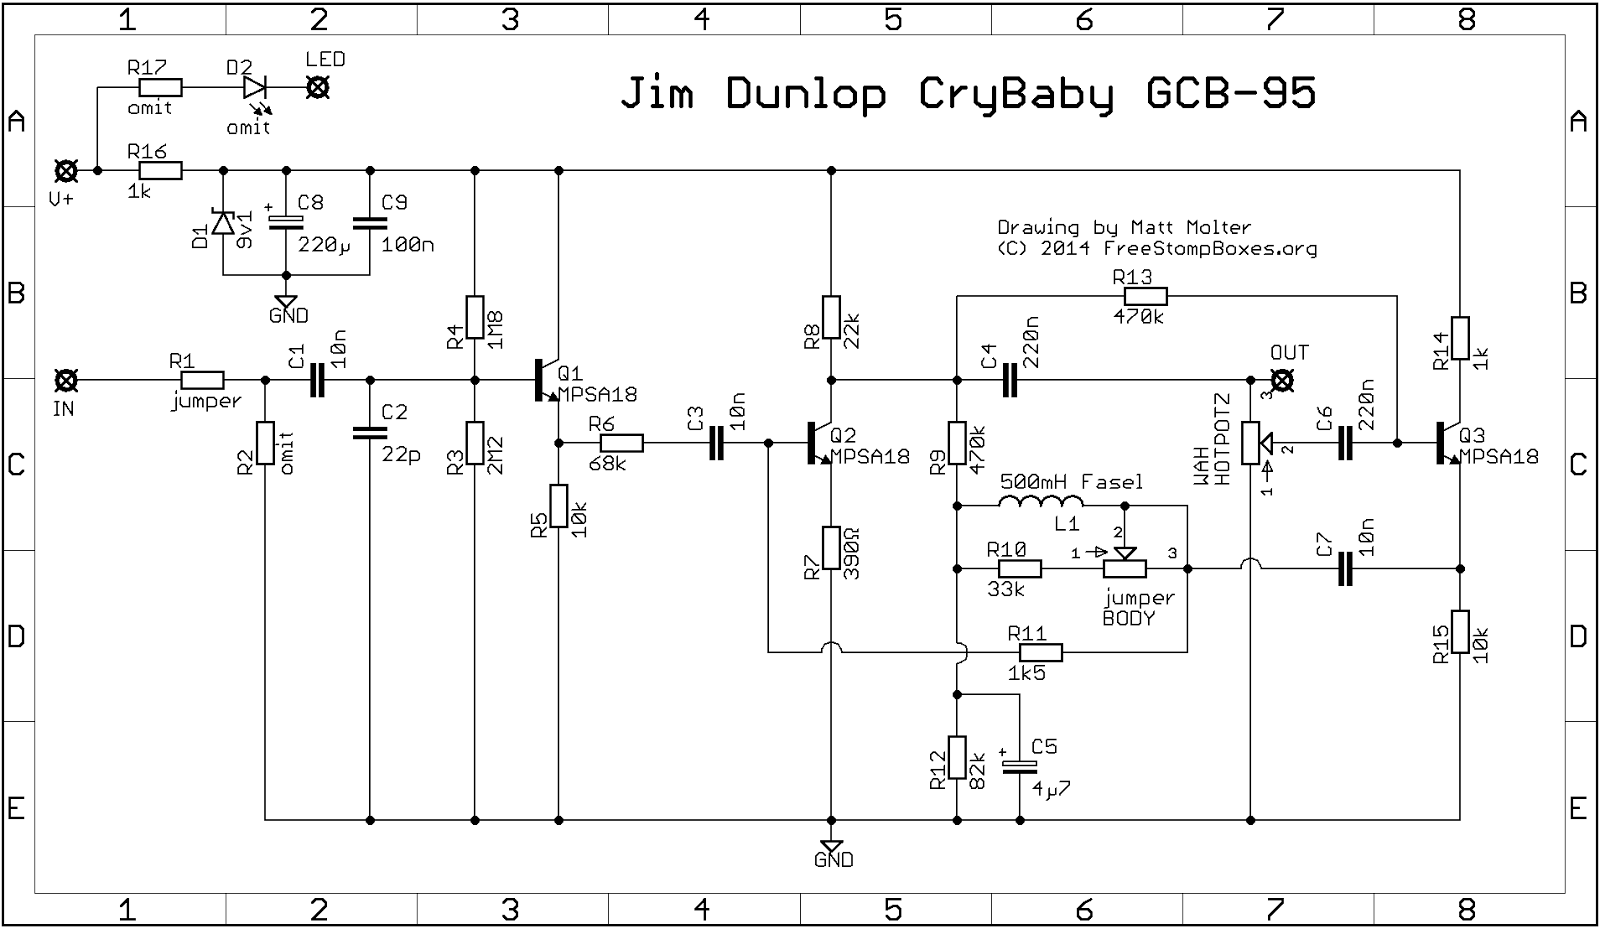 Guitar Fx Layouts Jim Dunlop Crybaby Gcb 95